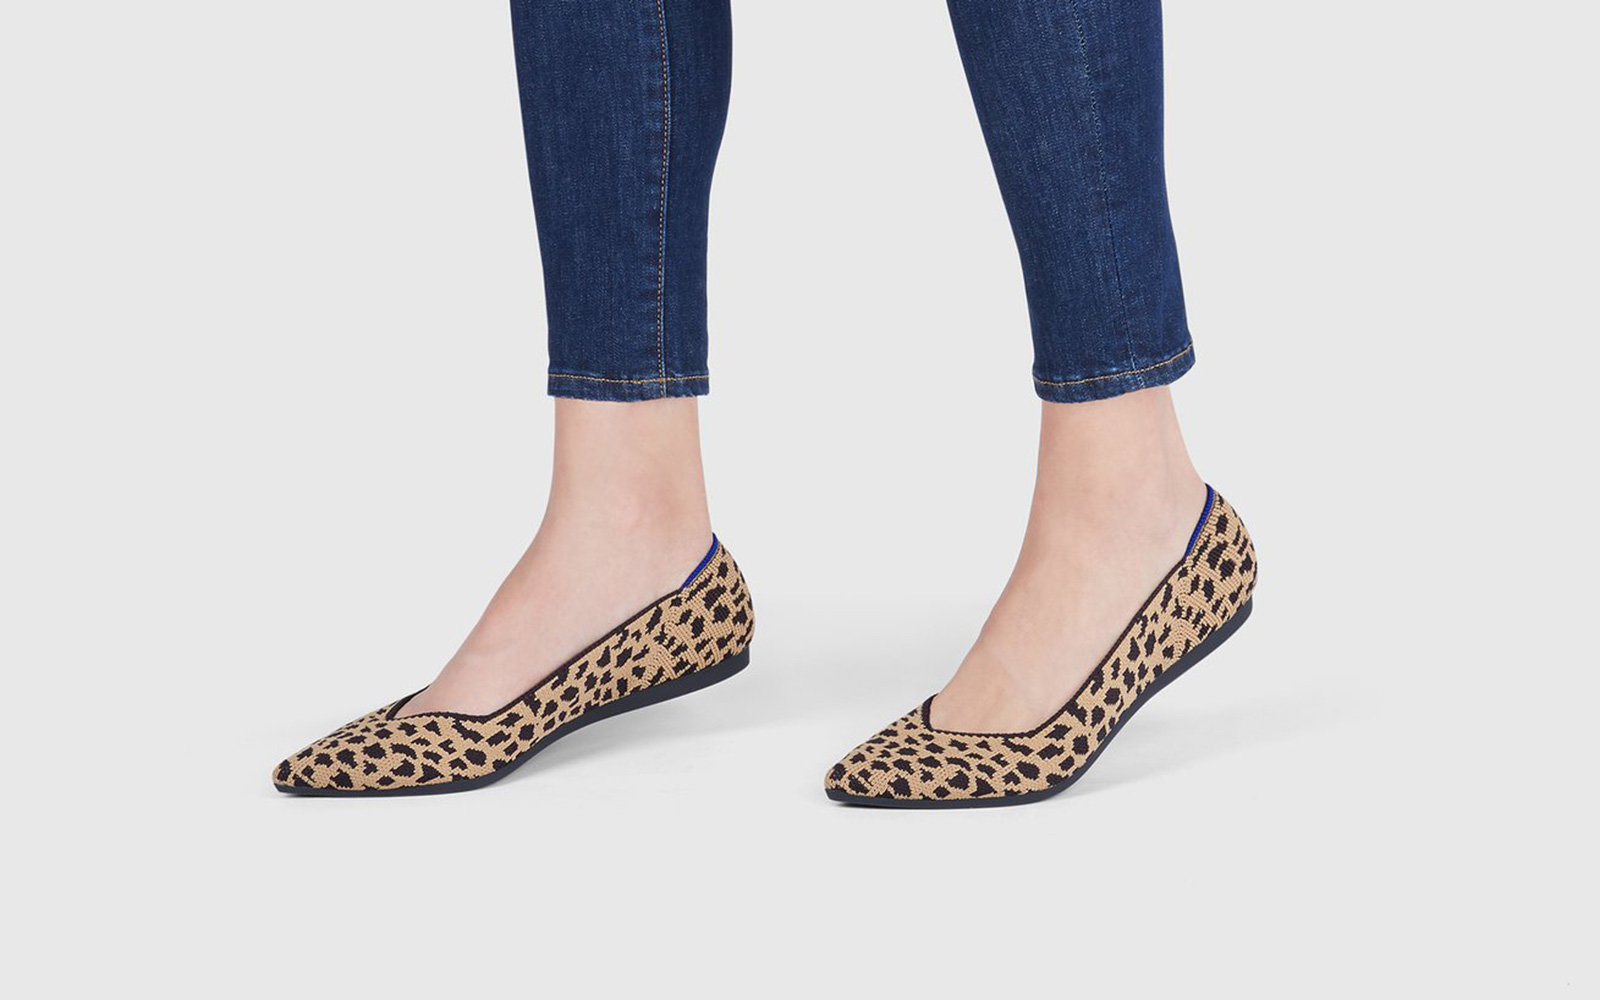 fab1bb9ee75 The Best Comfortable (and Cute) Flats for Travel